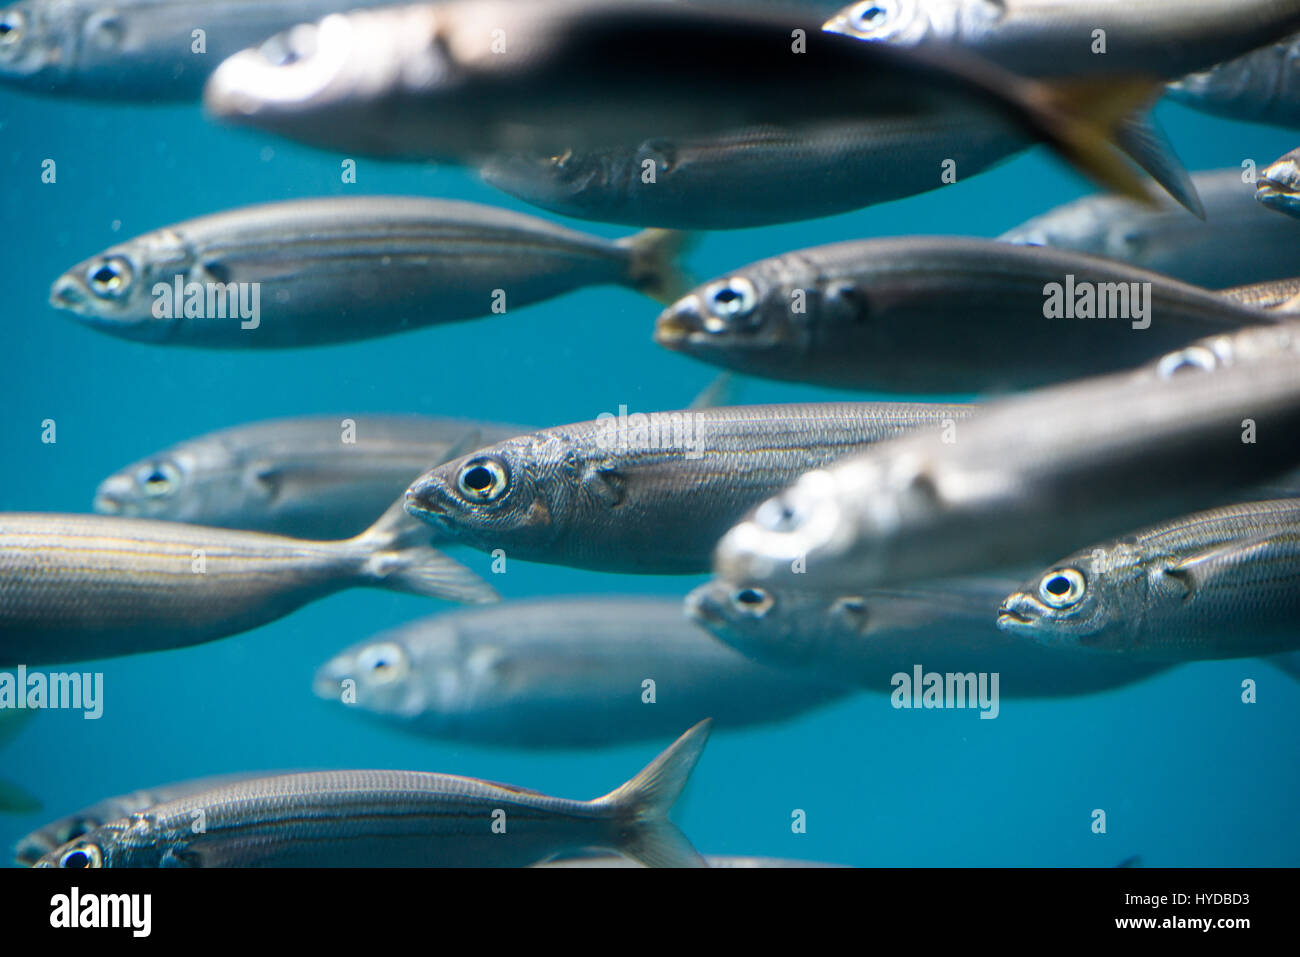 Underwater fish photography Stock Photo